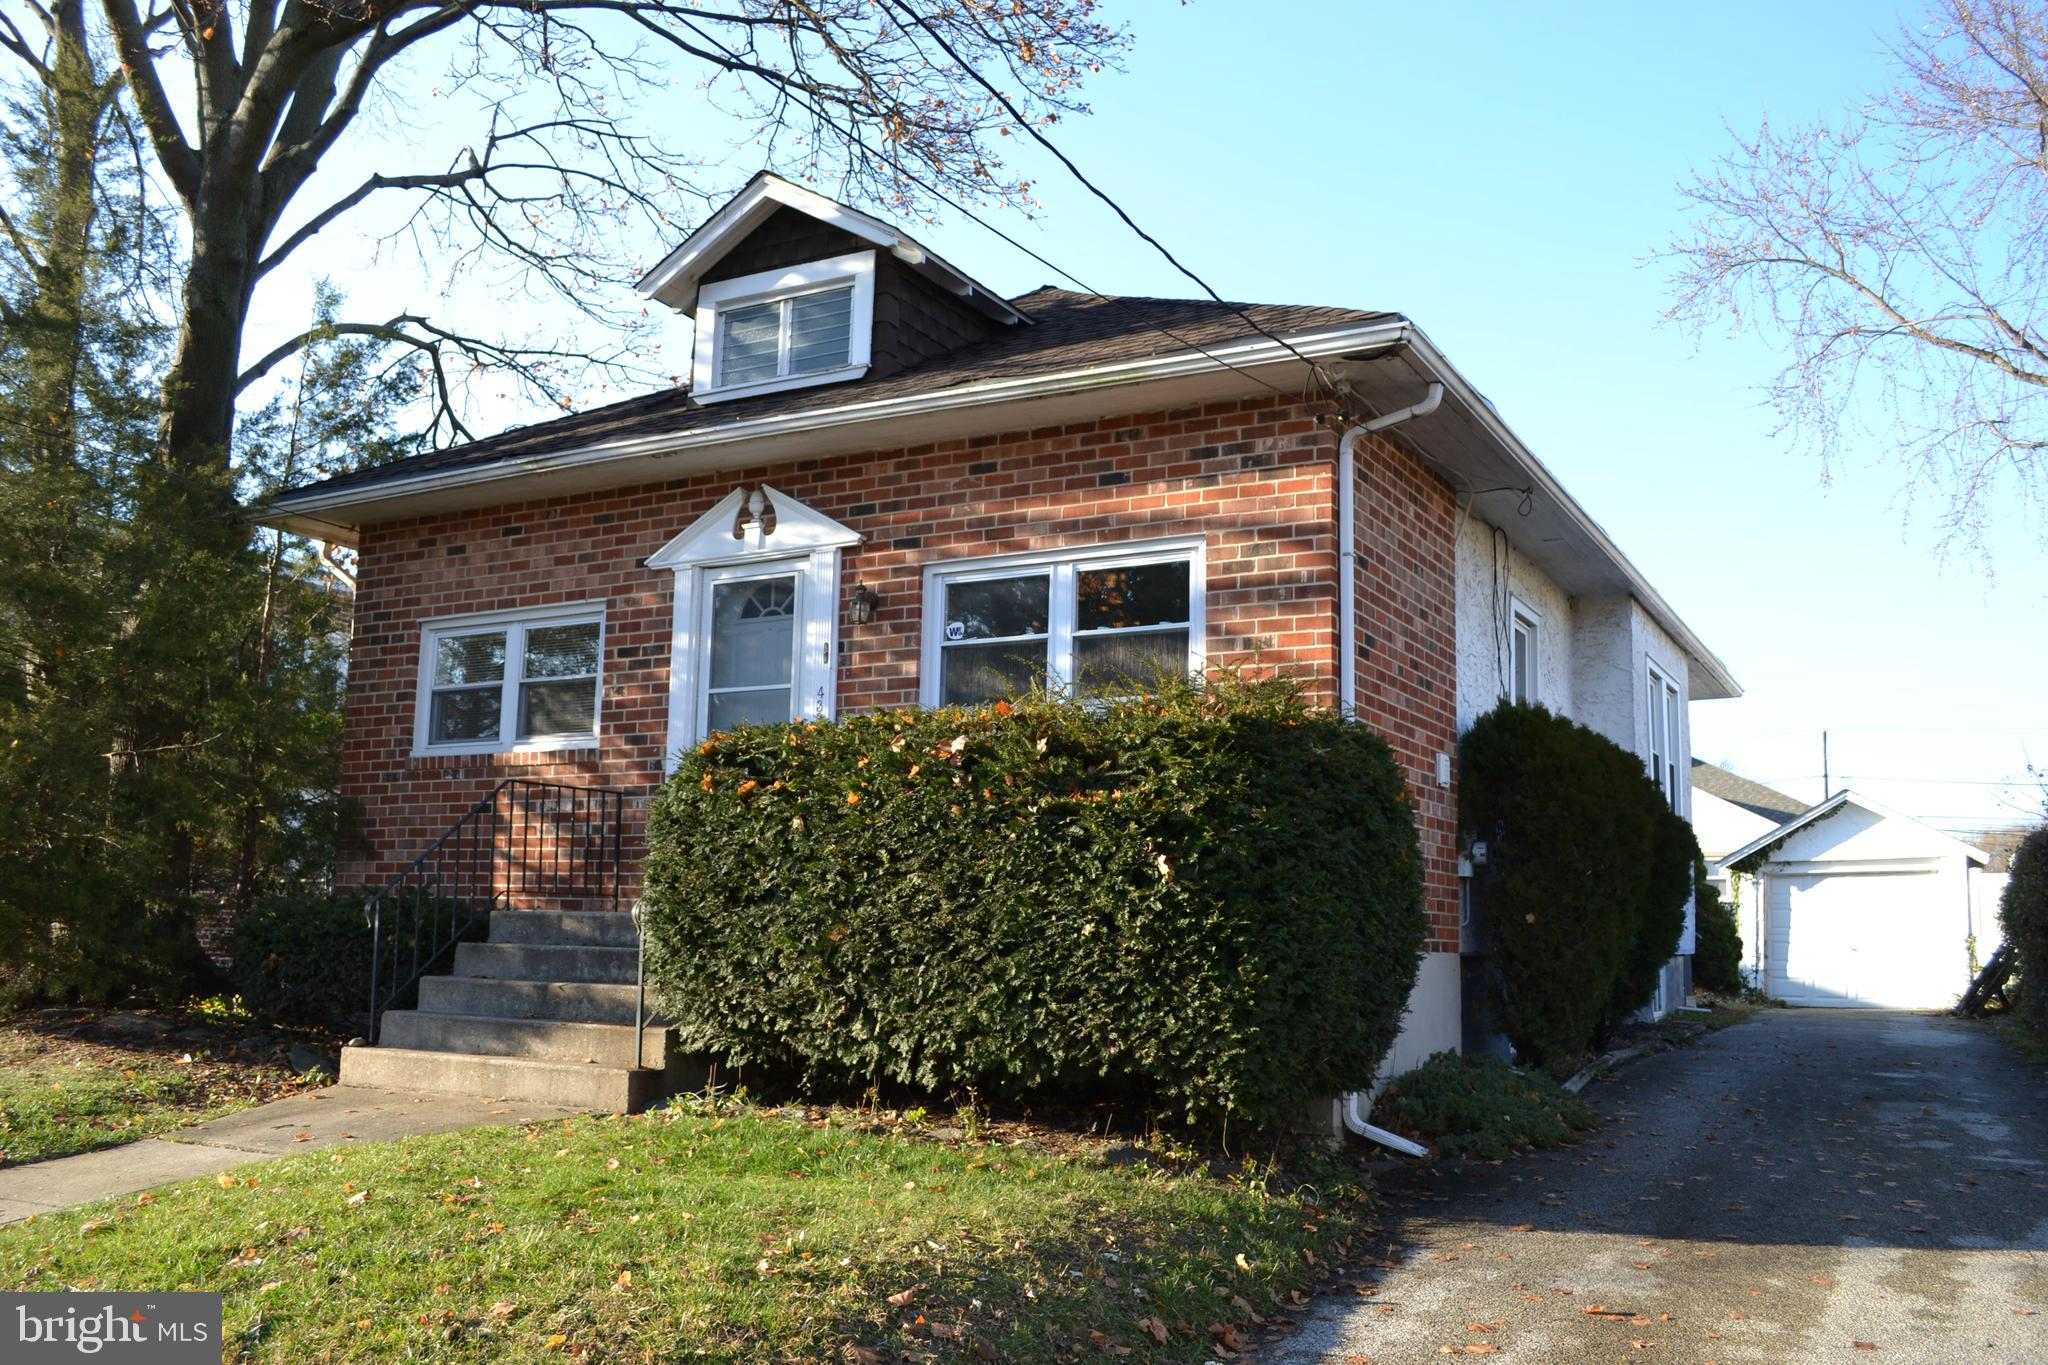 433 COMERFORD AVENUE, RIDLEY PARK, PA 19078